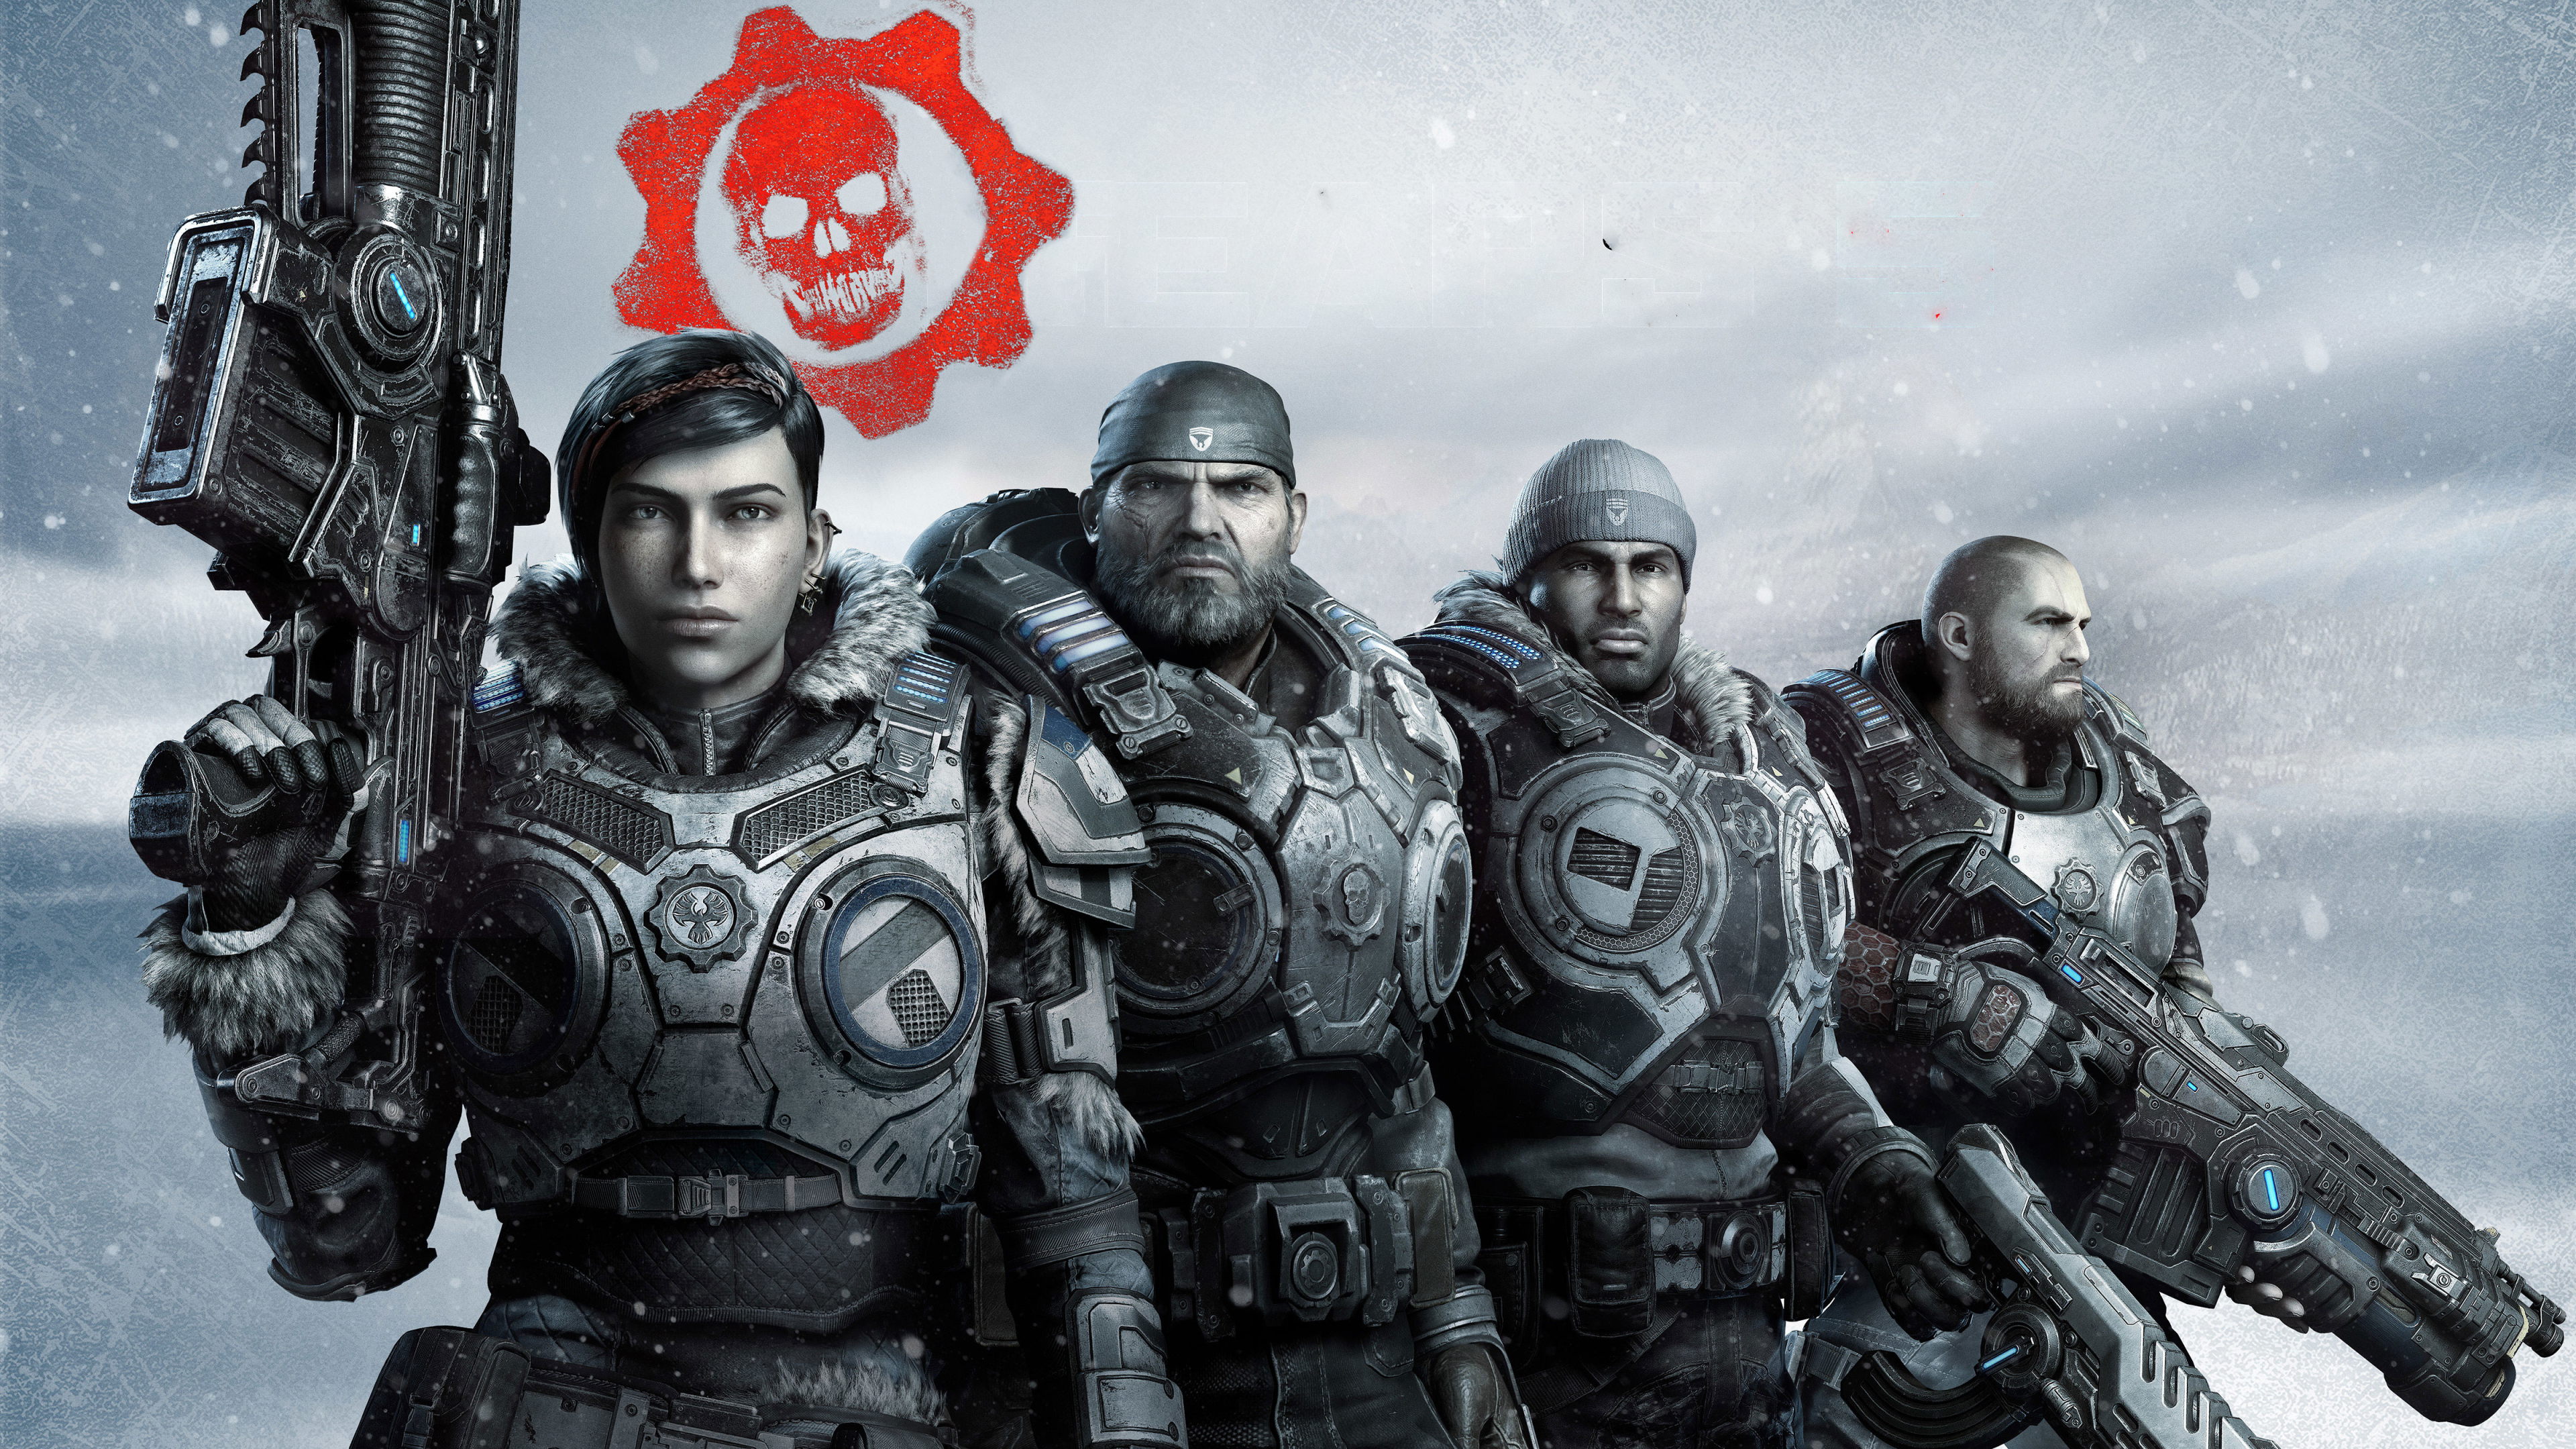 Gears 5 Game Wallpaper in 3840x2160 Resolution